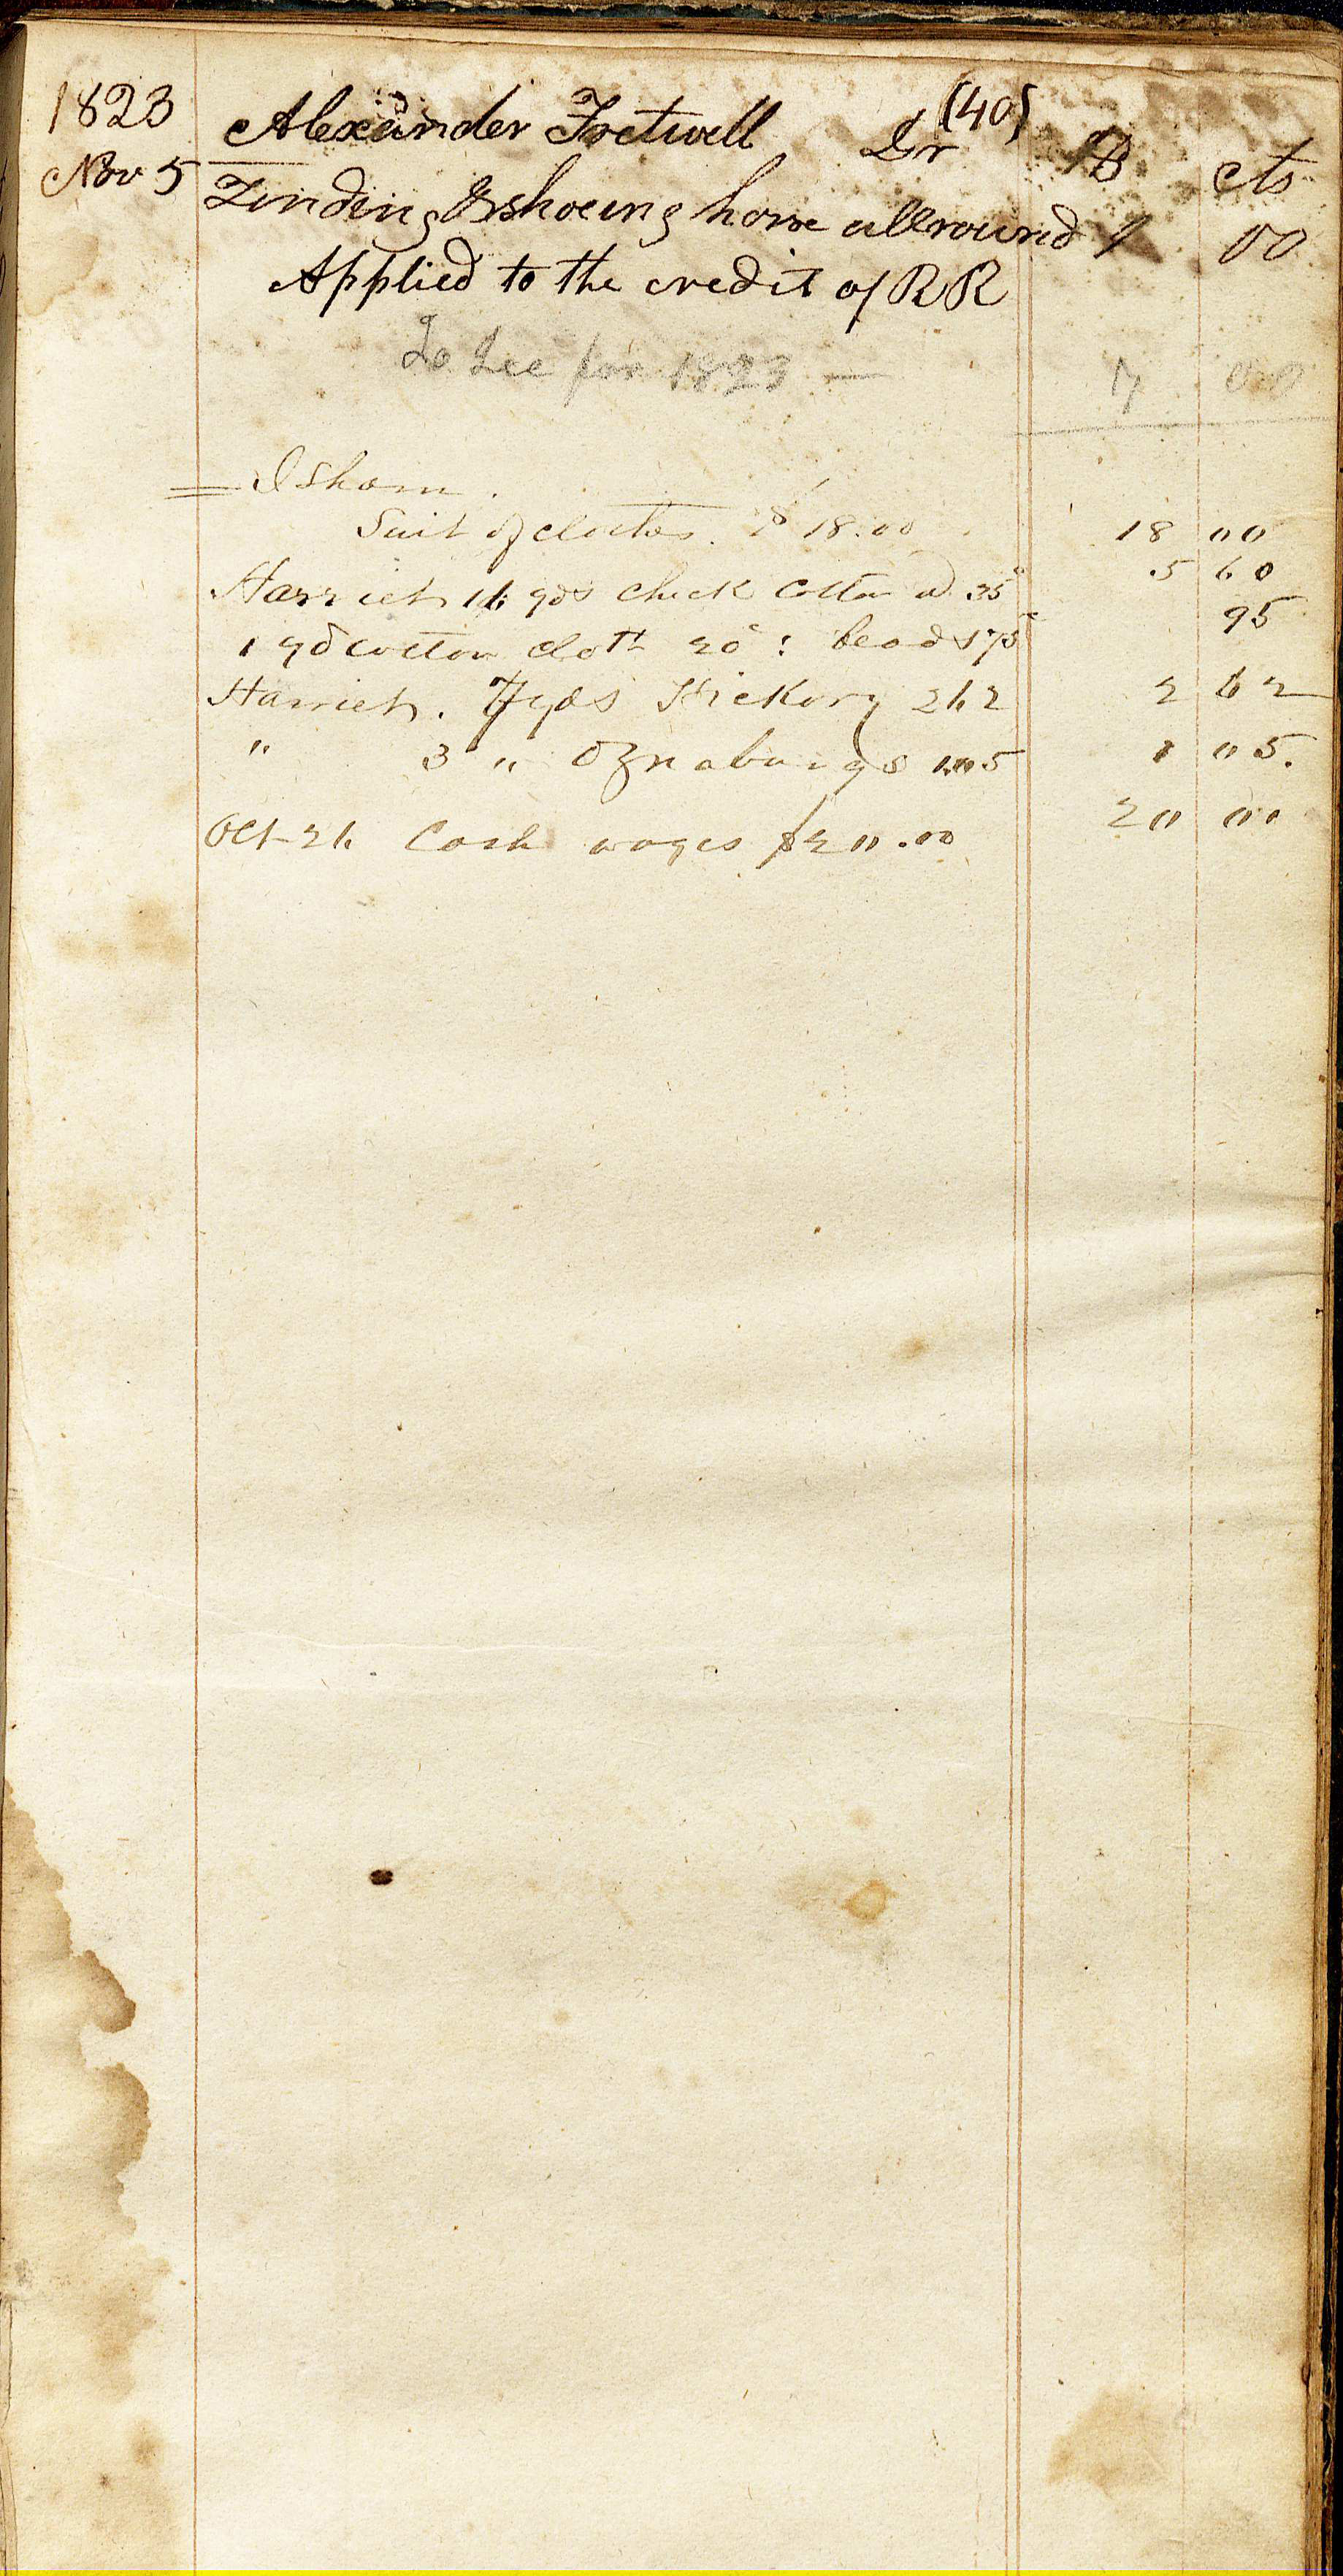 "On this page of the Rives account book, opposite of  Nicey's entry is written the name Isham and under the name ""suit of clothes $18.00. The entry dates listed on 1823 but the entry was to have been made much later. Most likely sometime in the 1840's Robert Rives Blacksmith Shop Account Book, 1823; 1843-1846, Accession #4655 (Image by Regina Rush)"